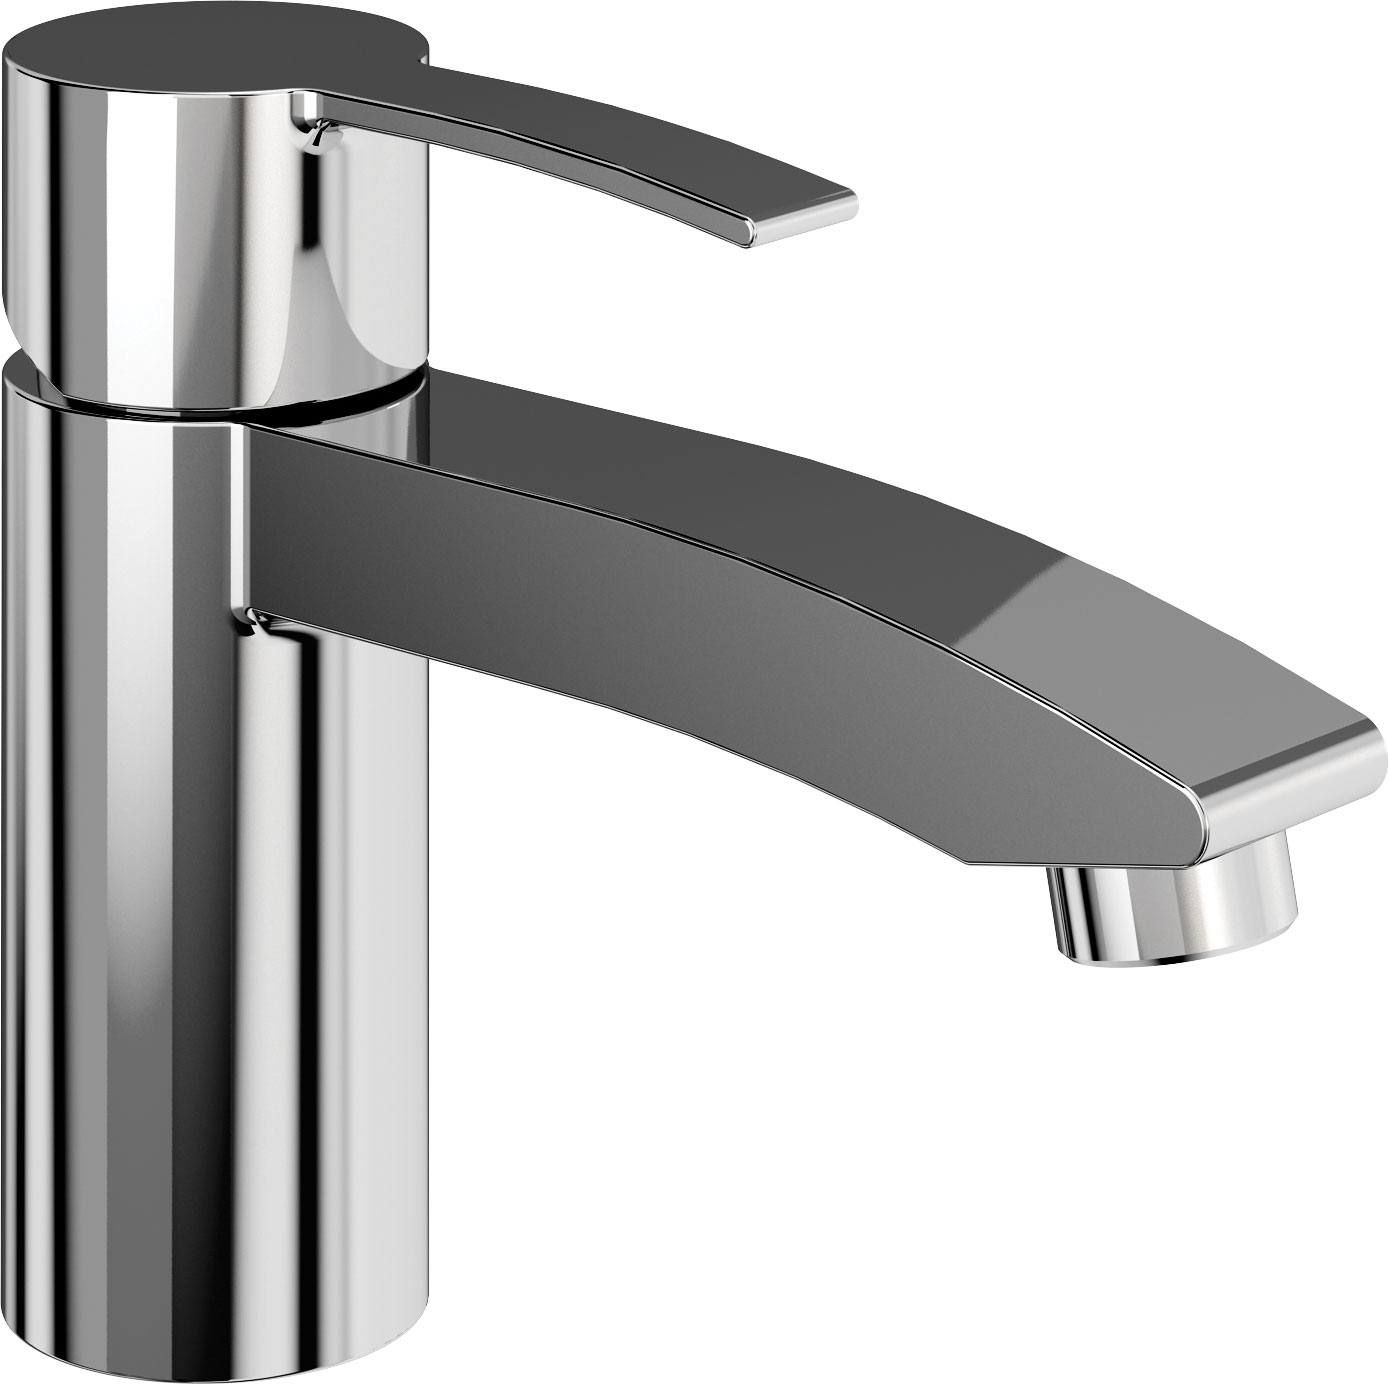 click on Monobloc Bath Filler image to enlarge